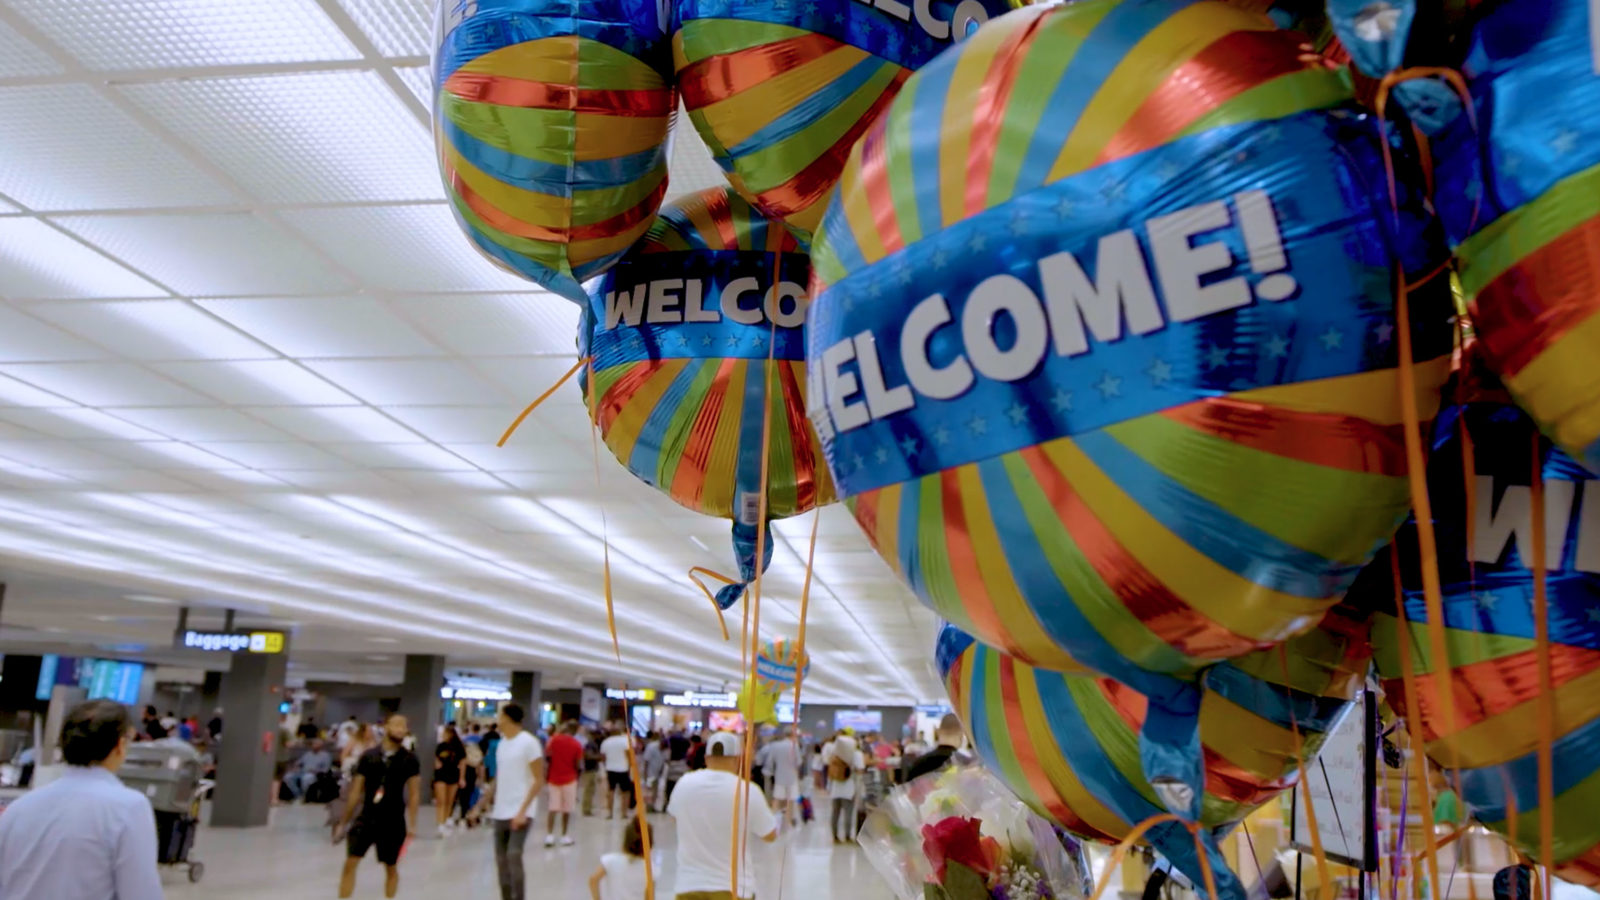 Welcoming balloons float at Dulles Airport